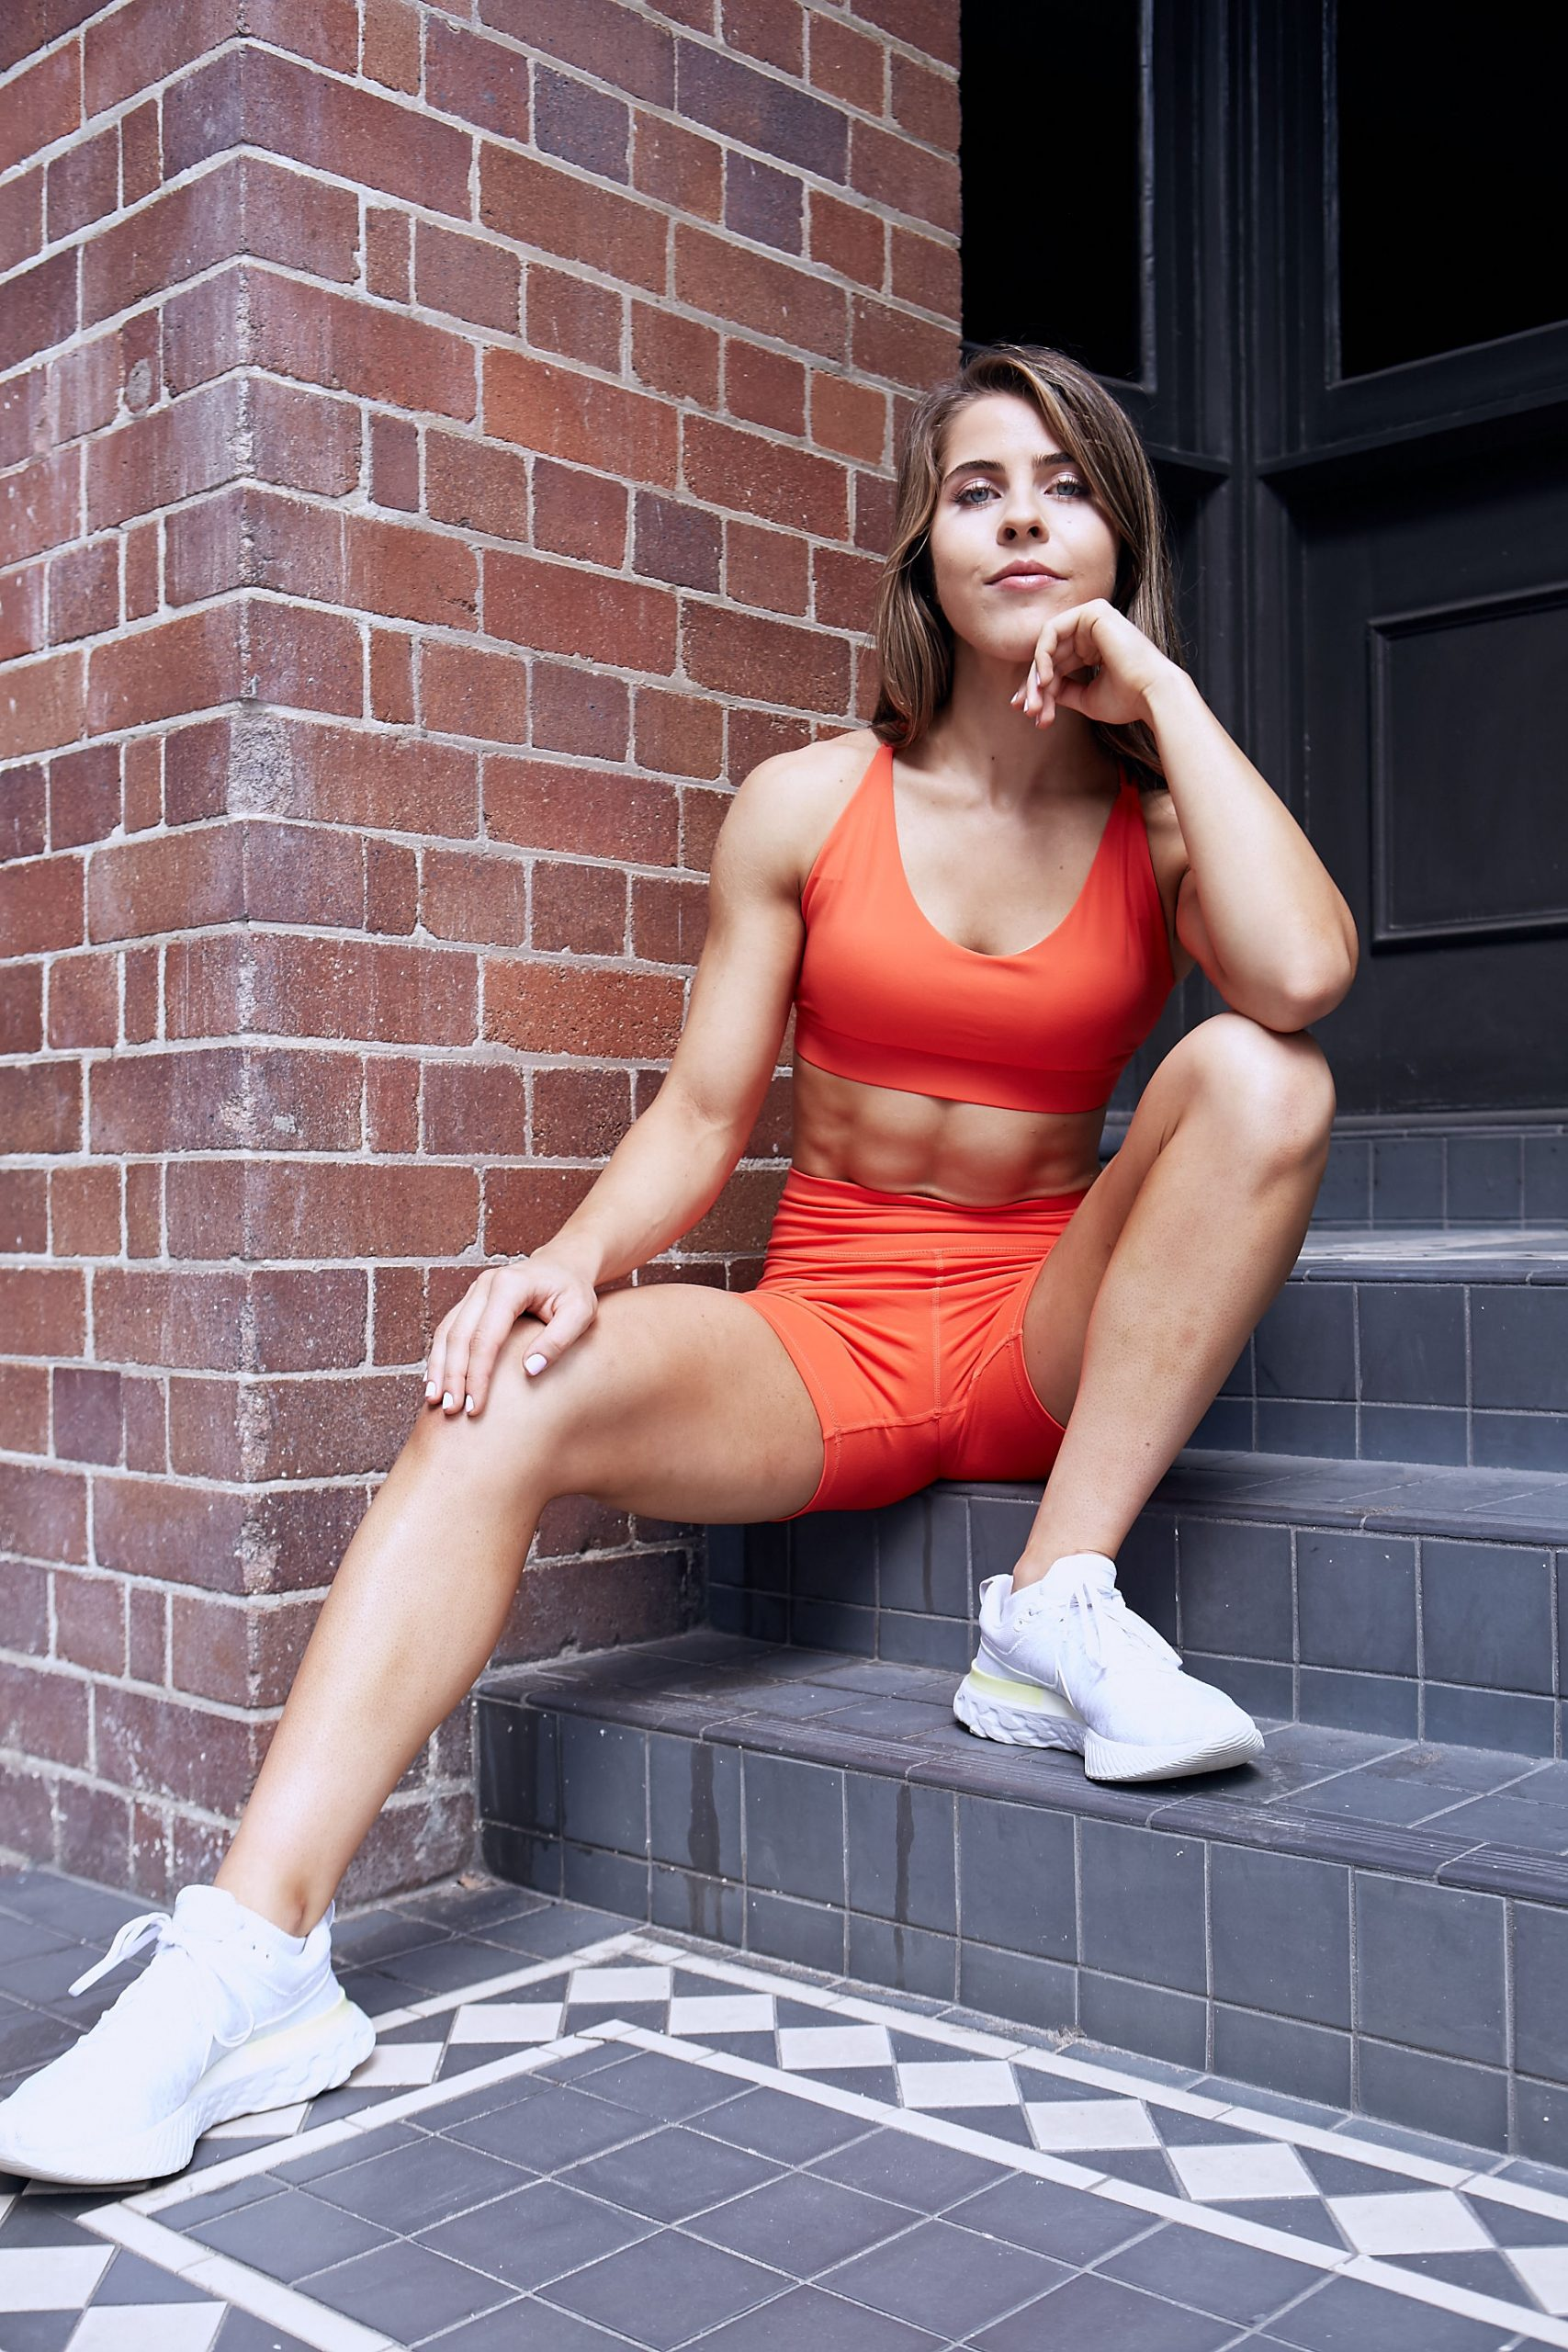 Natasha Sydney female fitness model and athlete sat in the dorrway during her fitness photo shoot scaled